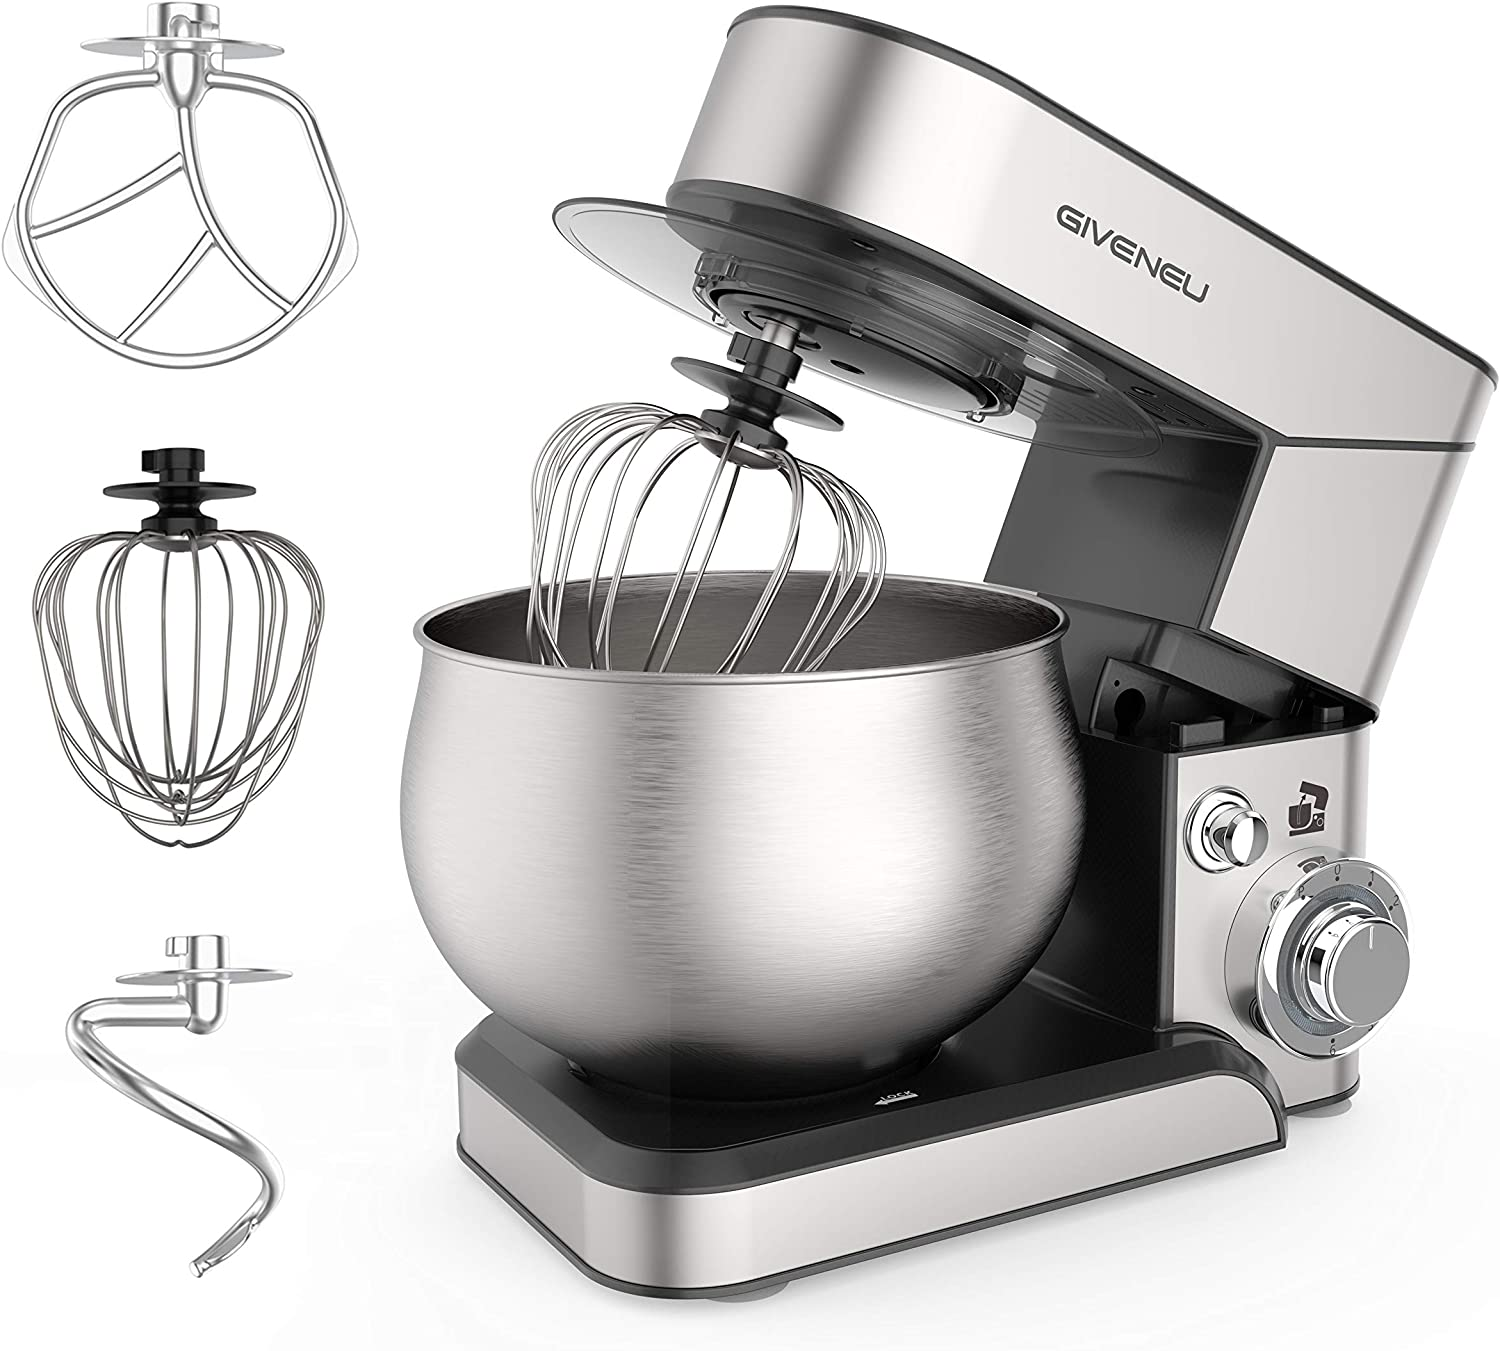 GIVENEU Stand Mixer, 1000W Food Mixer, 6 Speed Tilt-Head Electric Kitchen Dough Mixer with Dough Hook, Mixing Beater, Wire Whisk and Scraper, 5QT Bowl - Premium Stainless Steel Design